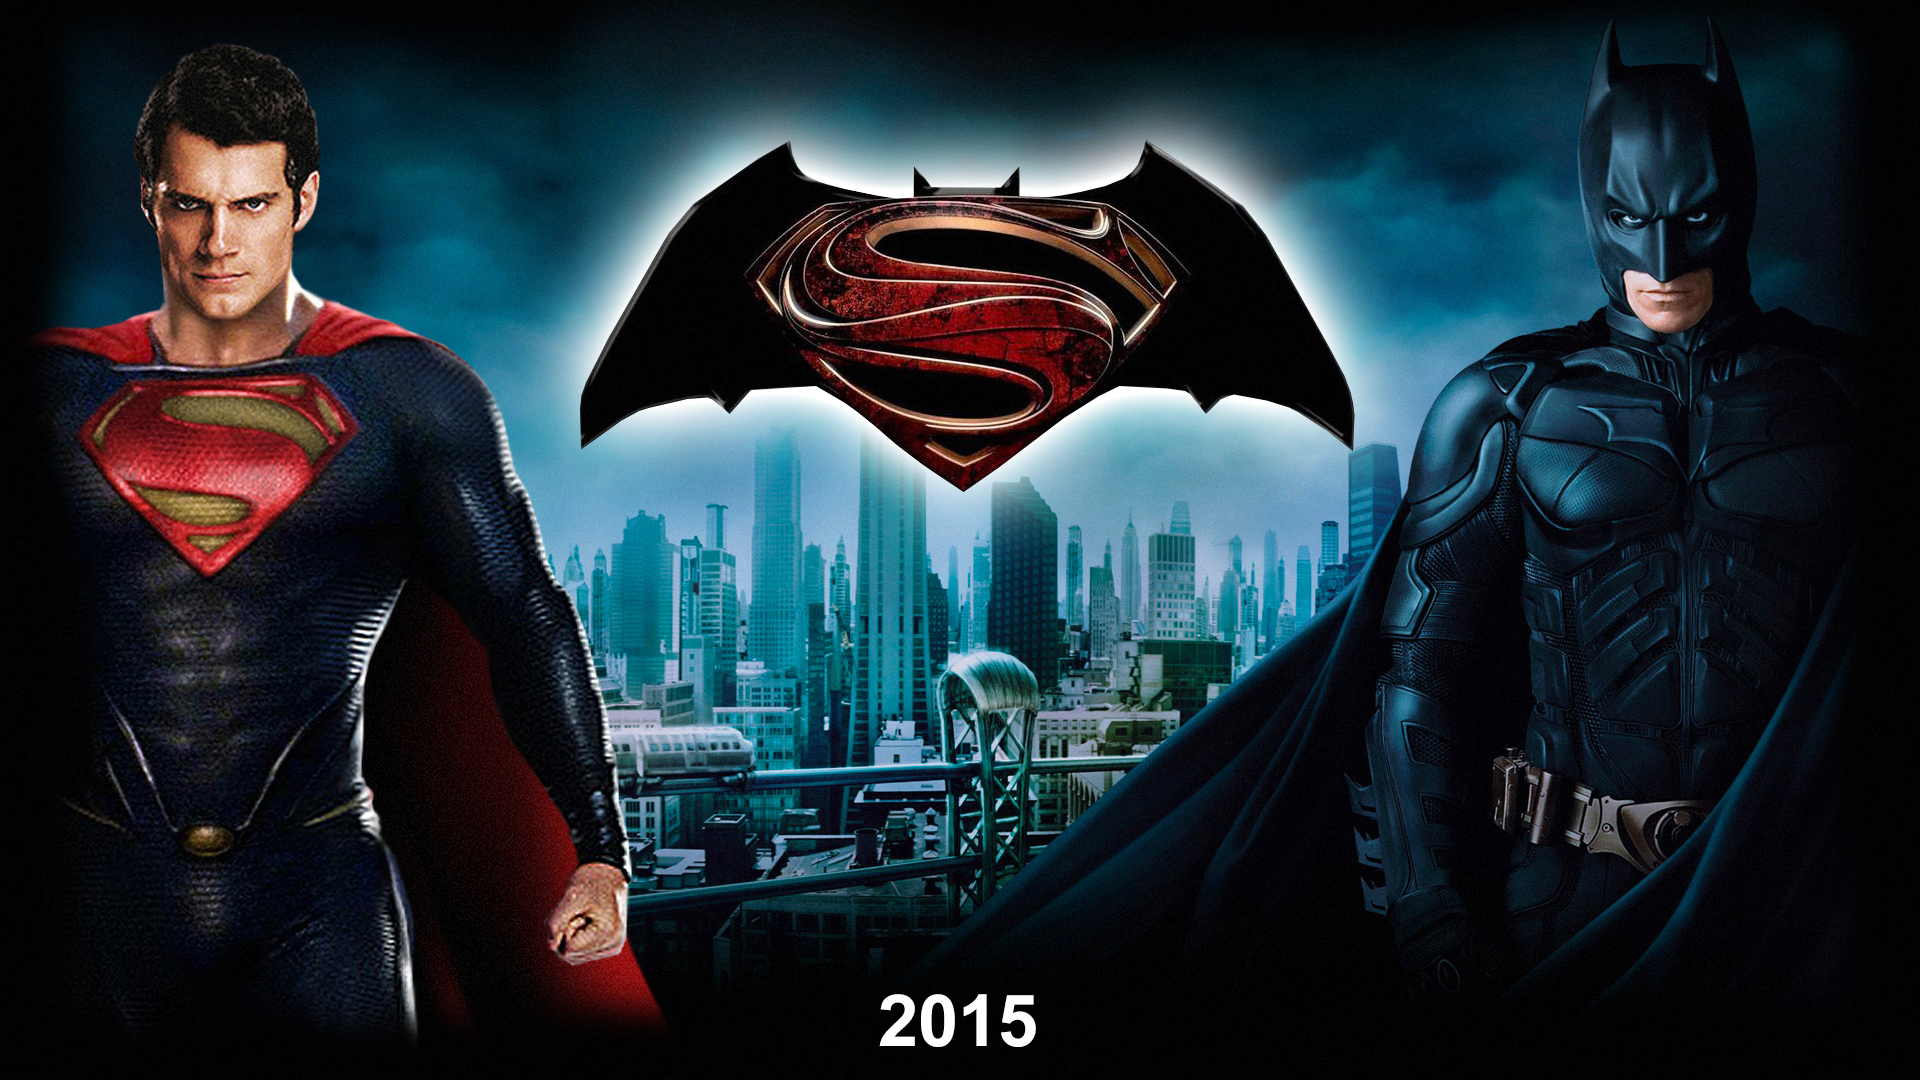 Batman vs Superman 2015 Movie